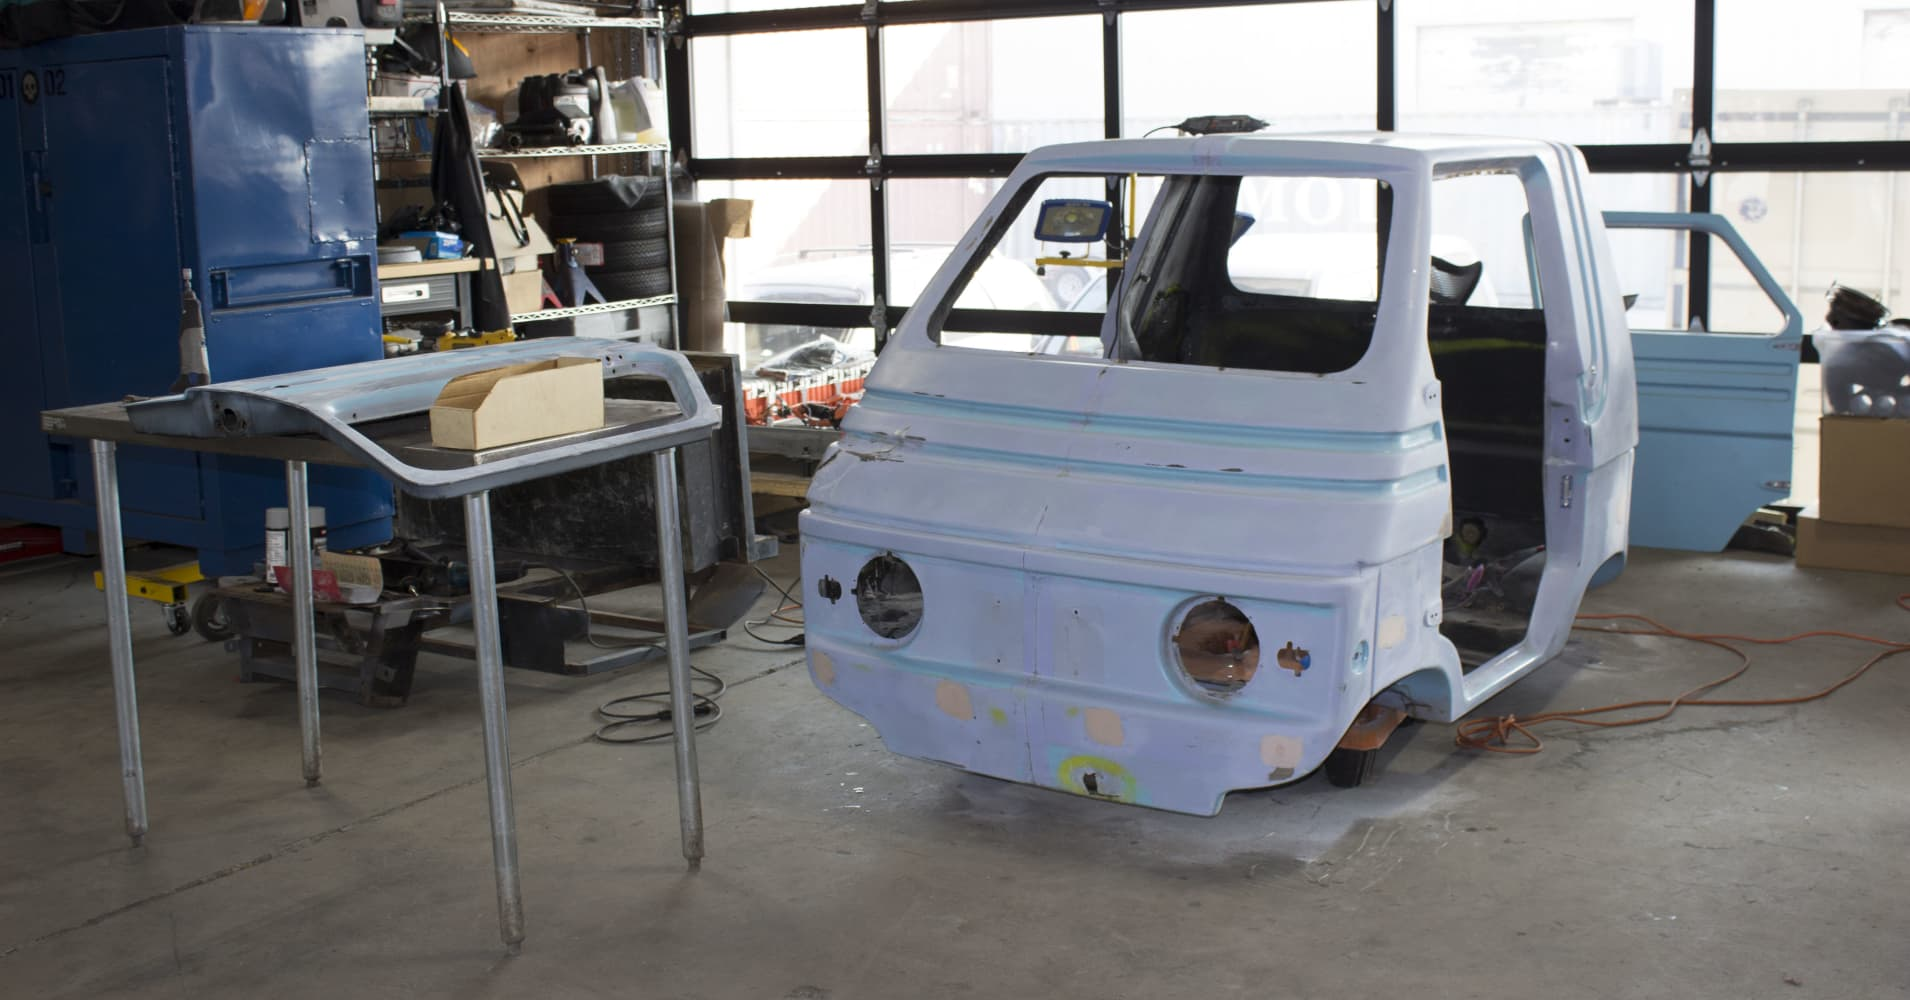 Employees at this Silicon Valley start-up are rebuilding a rare 1970s 'microcar' as a bonding exercise